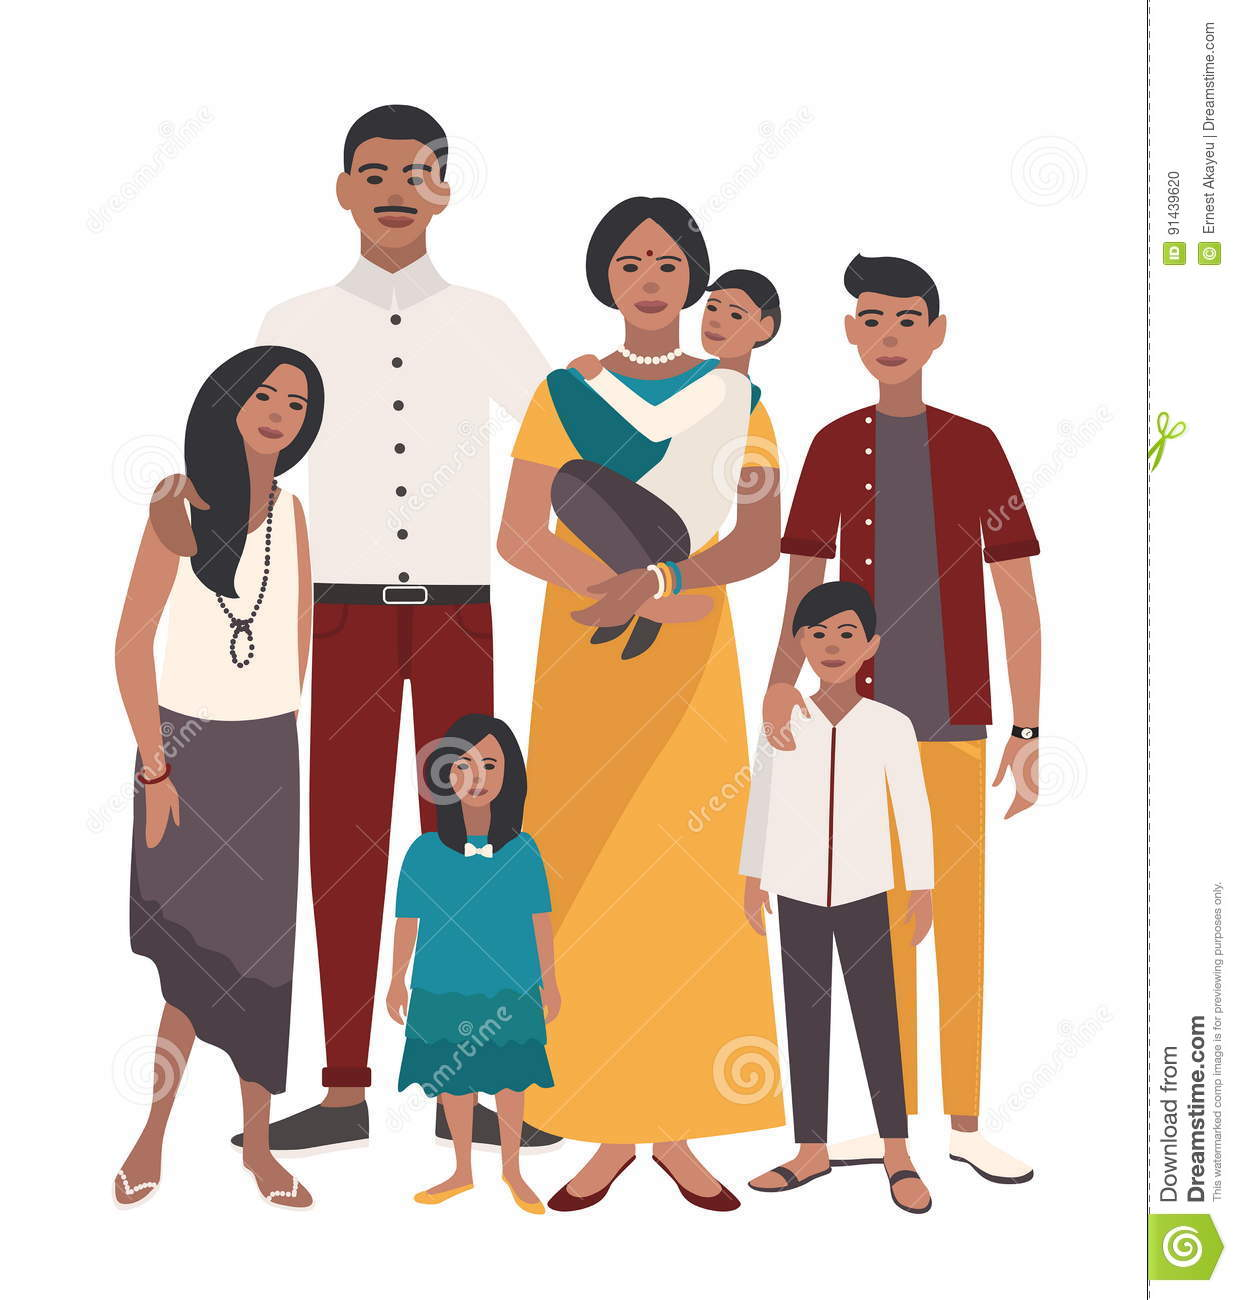 Family photos (760,488 free images)